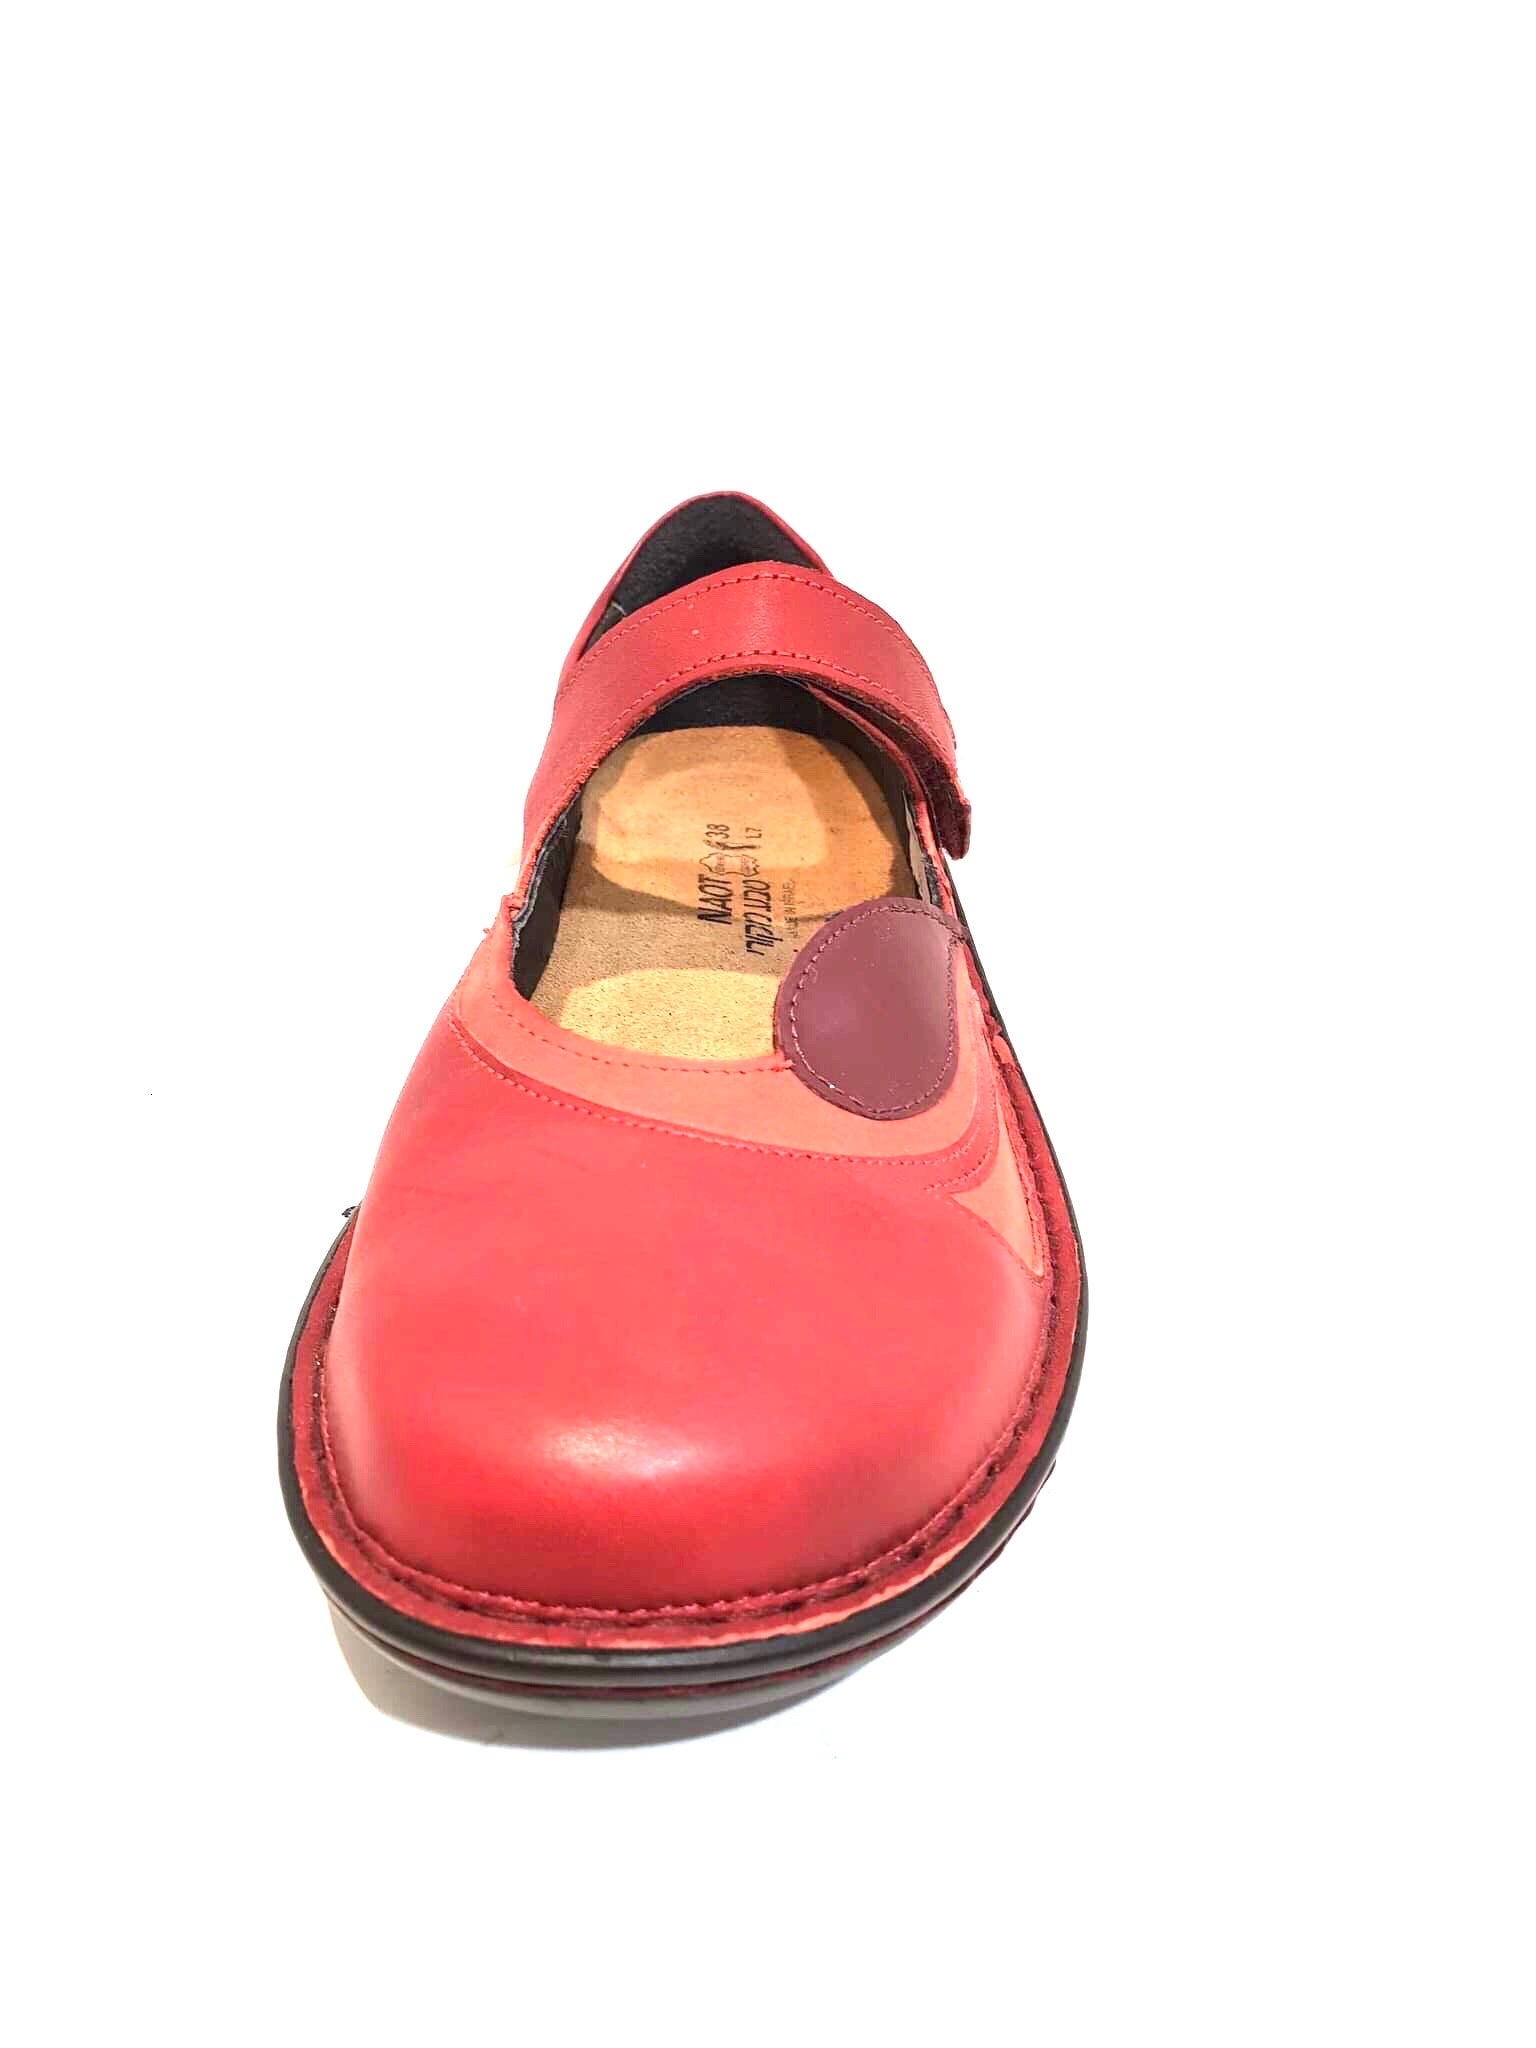 Naot Conga Red Combo Leather Velcro Mary Janes Ladies Shoes Made In Israel